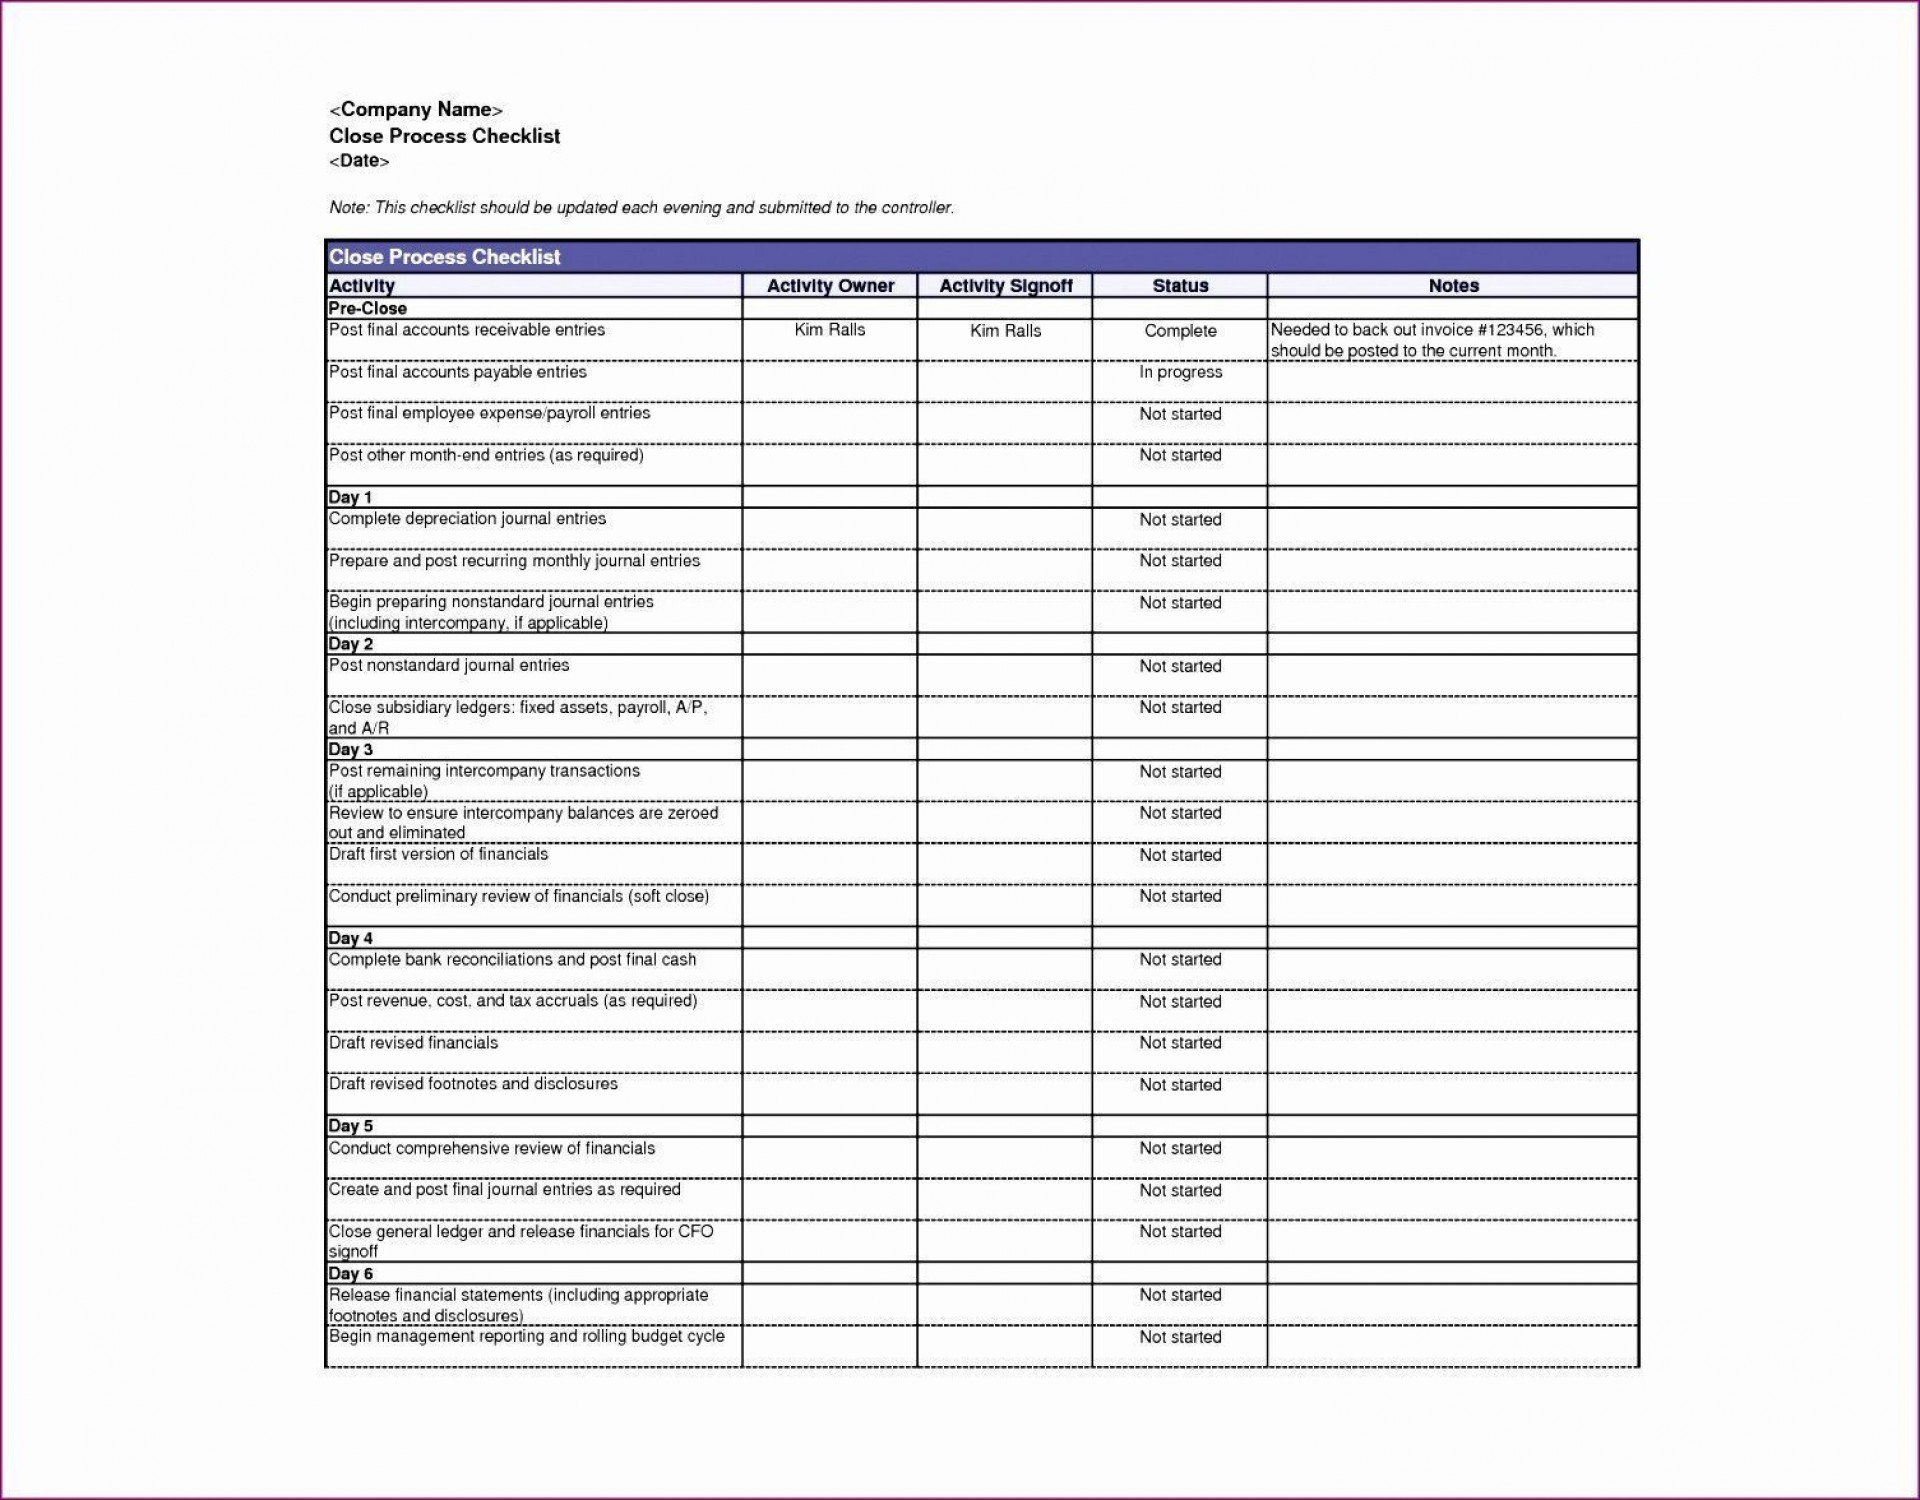 004 Dreaded Free Event Planner Template Excel Image  Checklist Planning For Corporate1920